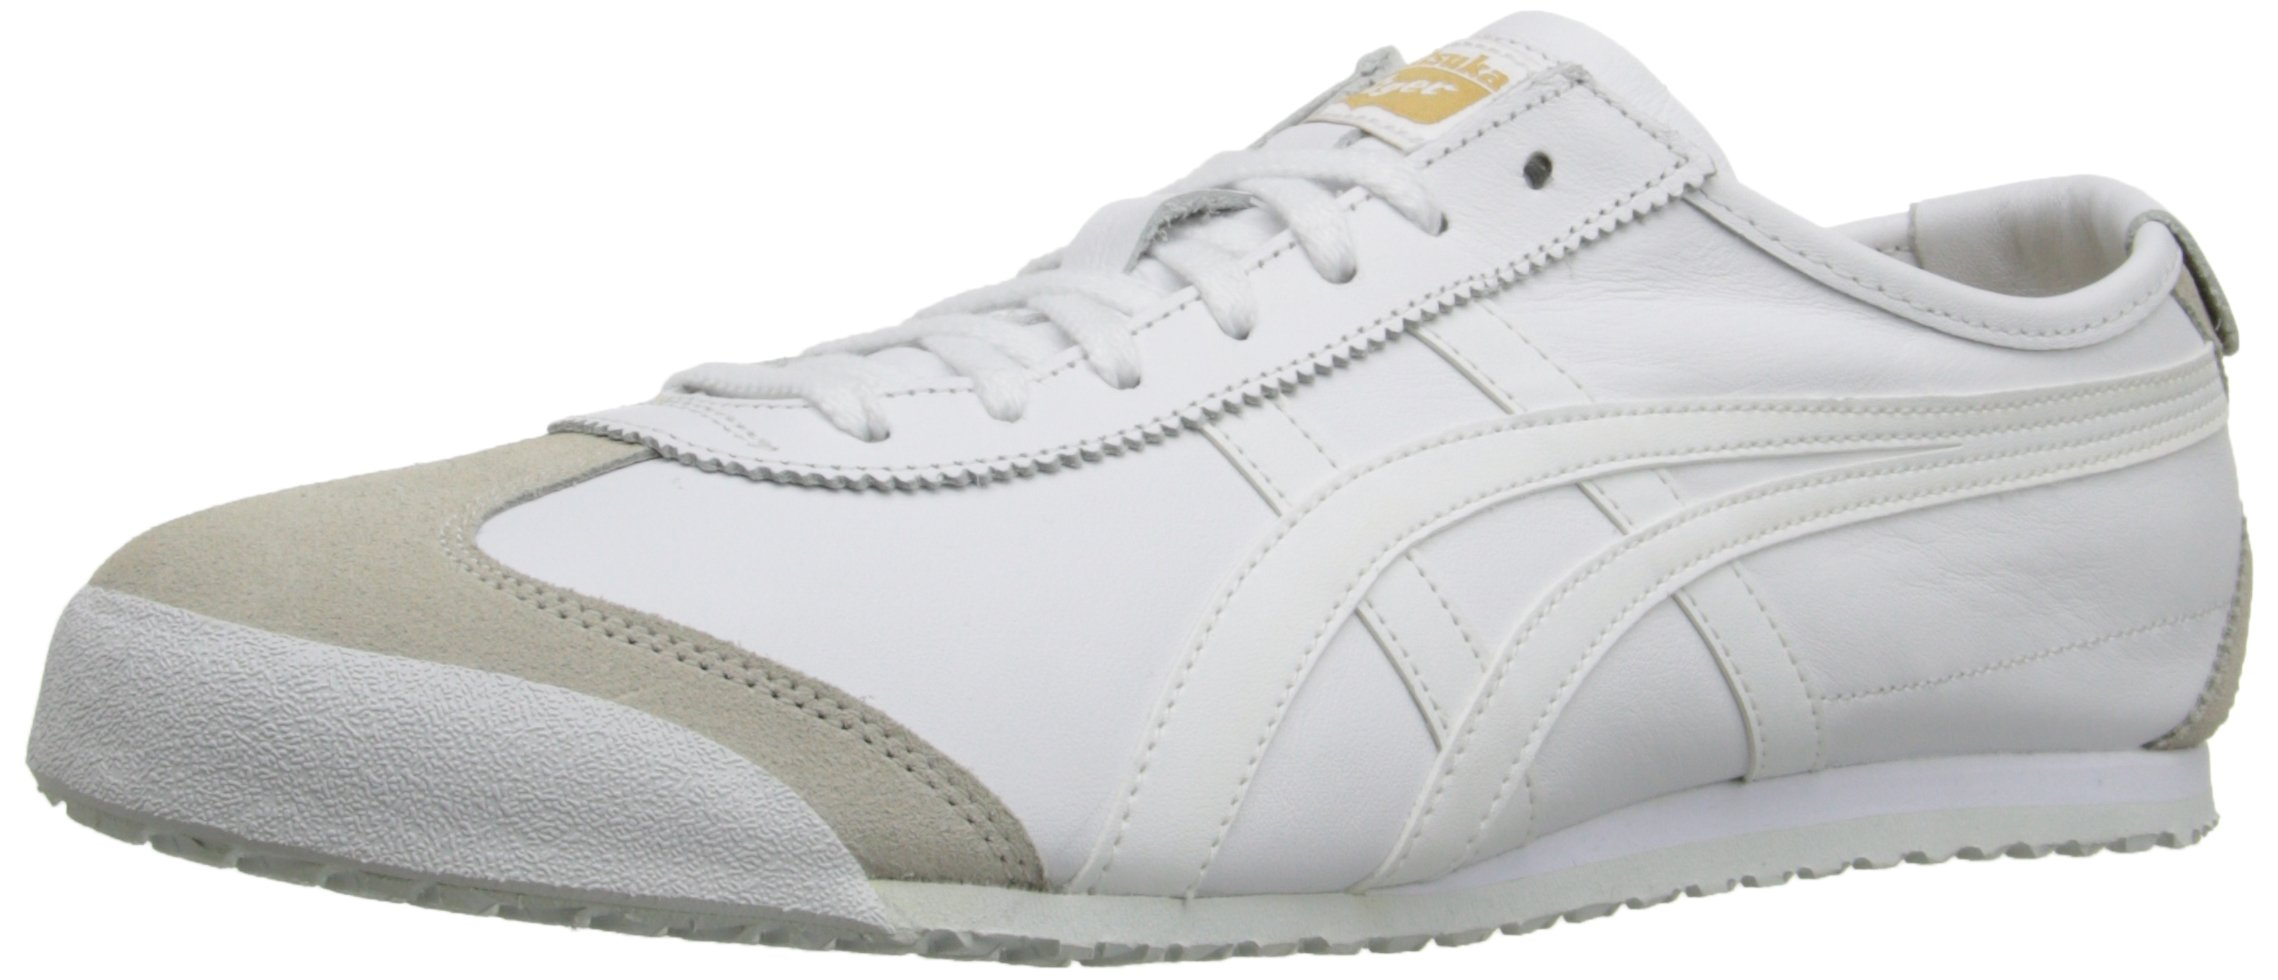 onitsuka tiger mexico 66 shoes price in india duty free